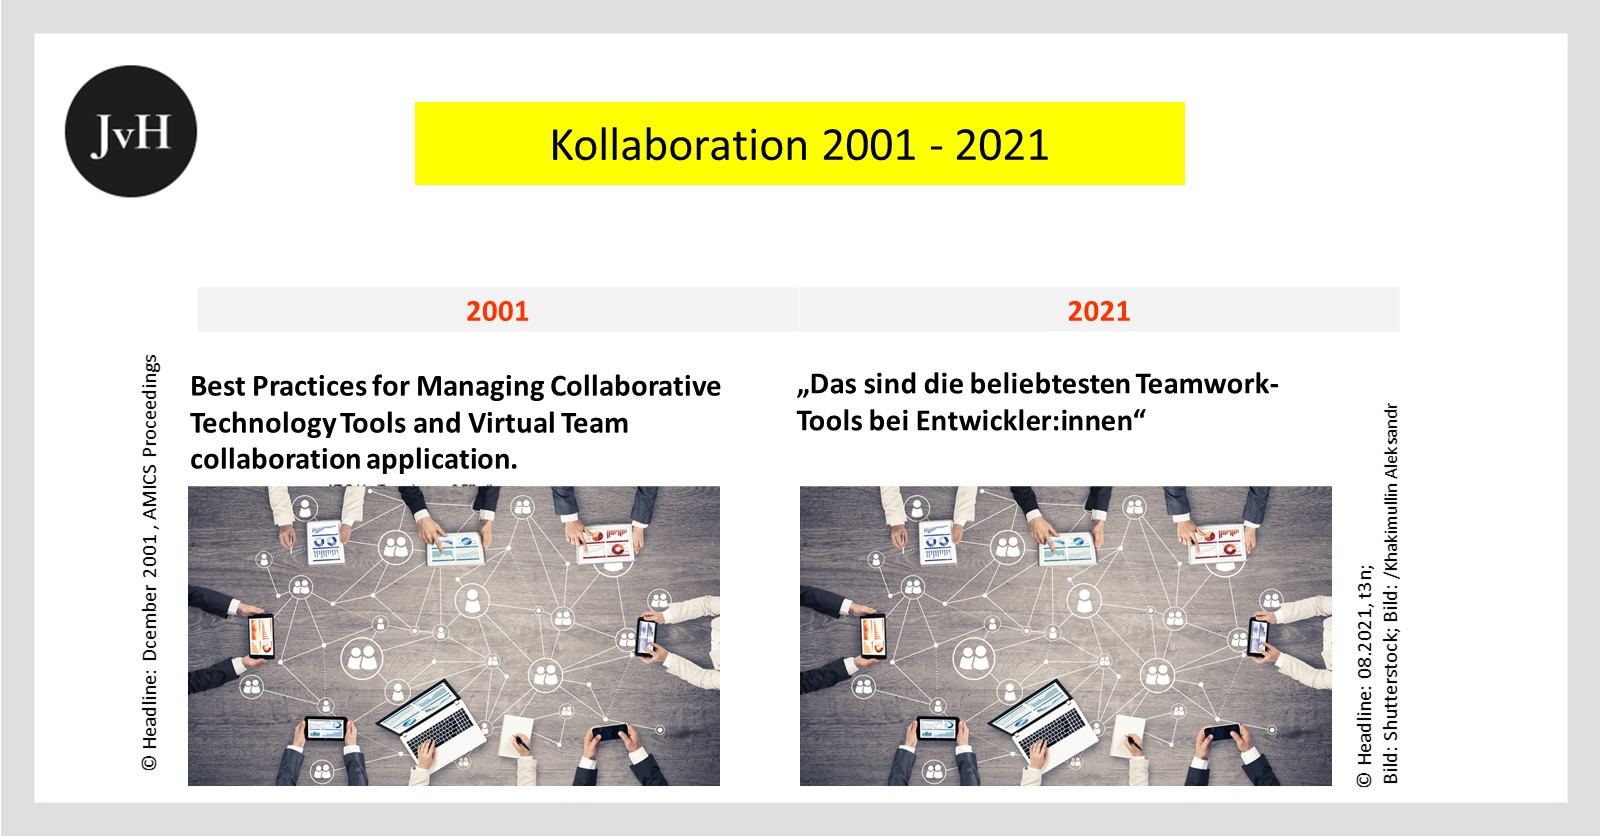 Two-Headlines;-one-from-2001-, the-other-from2021-on Collaboration.One-Pic-on-the-same-topic.Nothing-has-changed